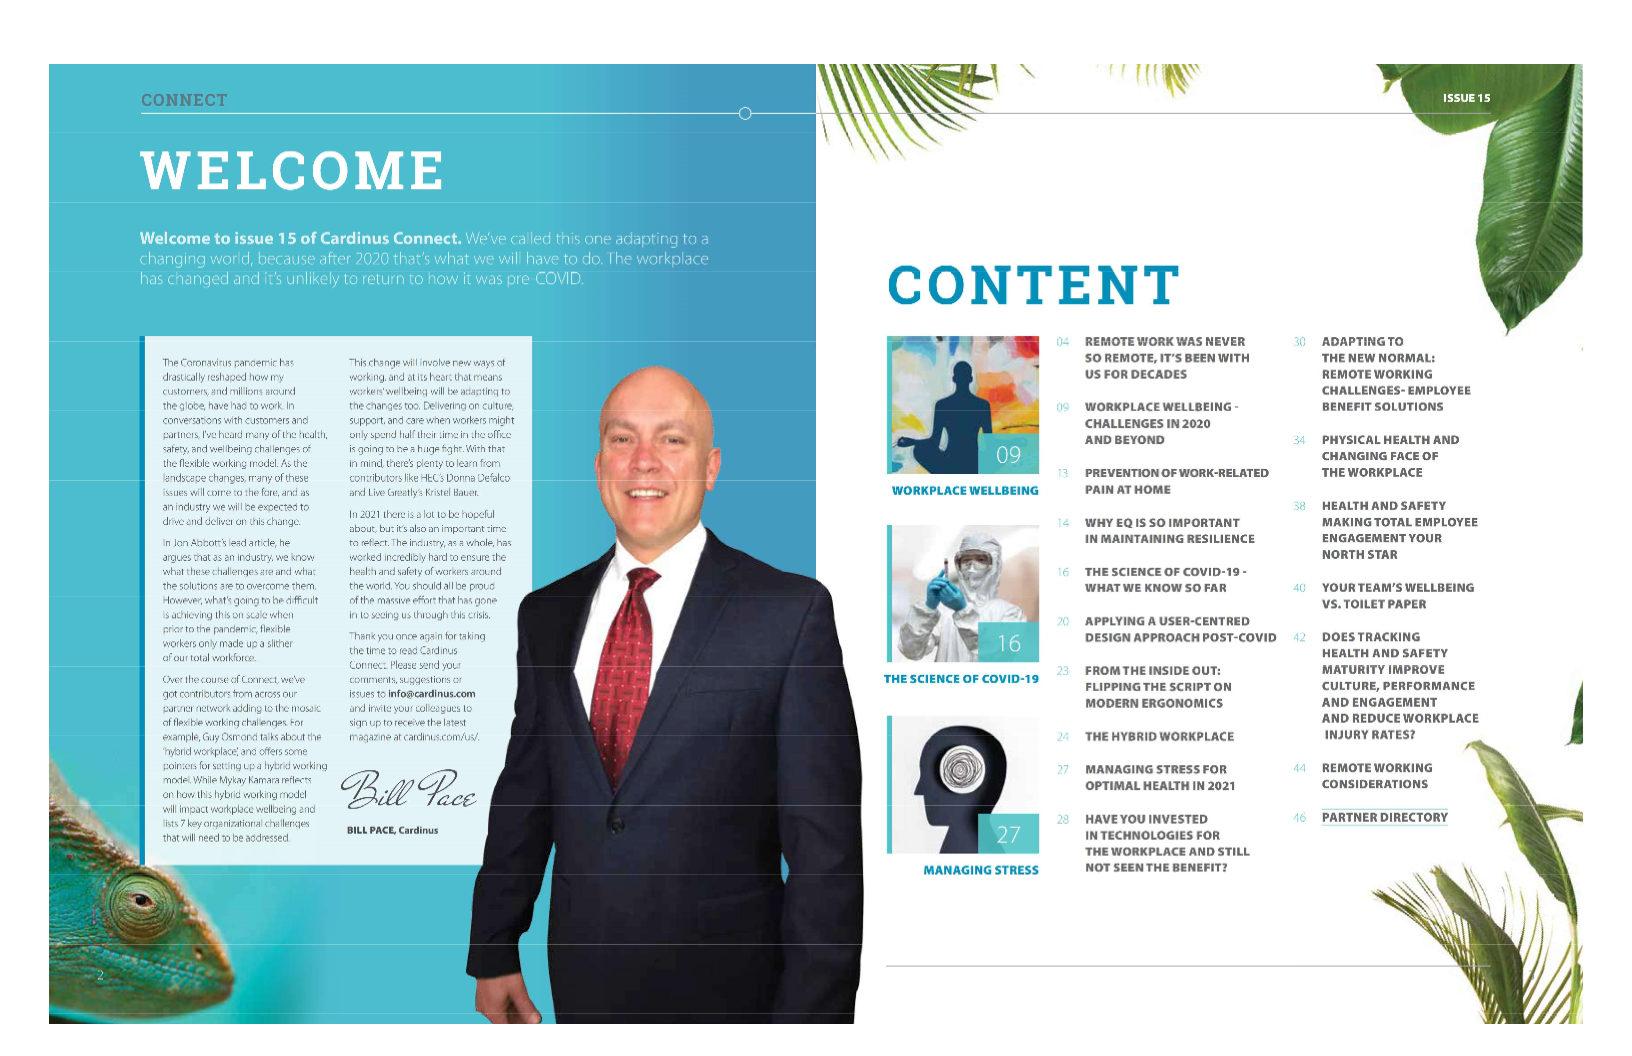 Bill Pace's introduction and contents page from Cardinus Connect, Issue 15